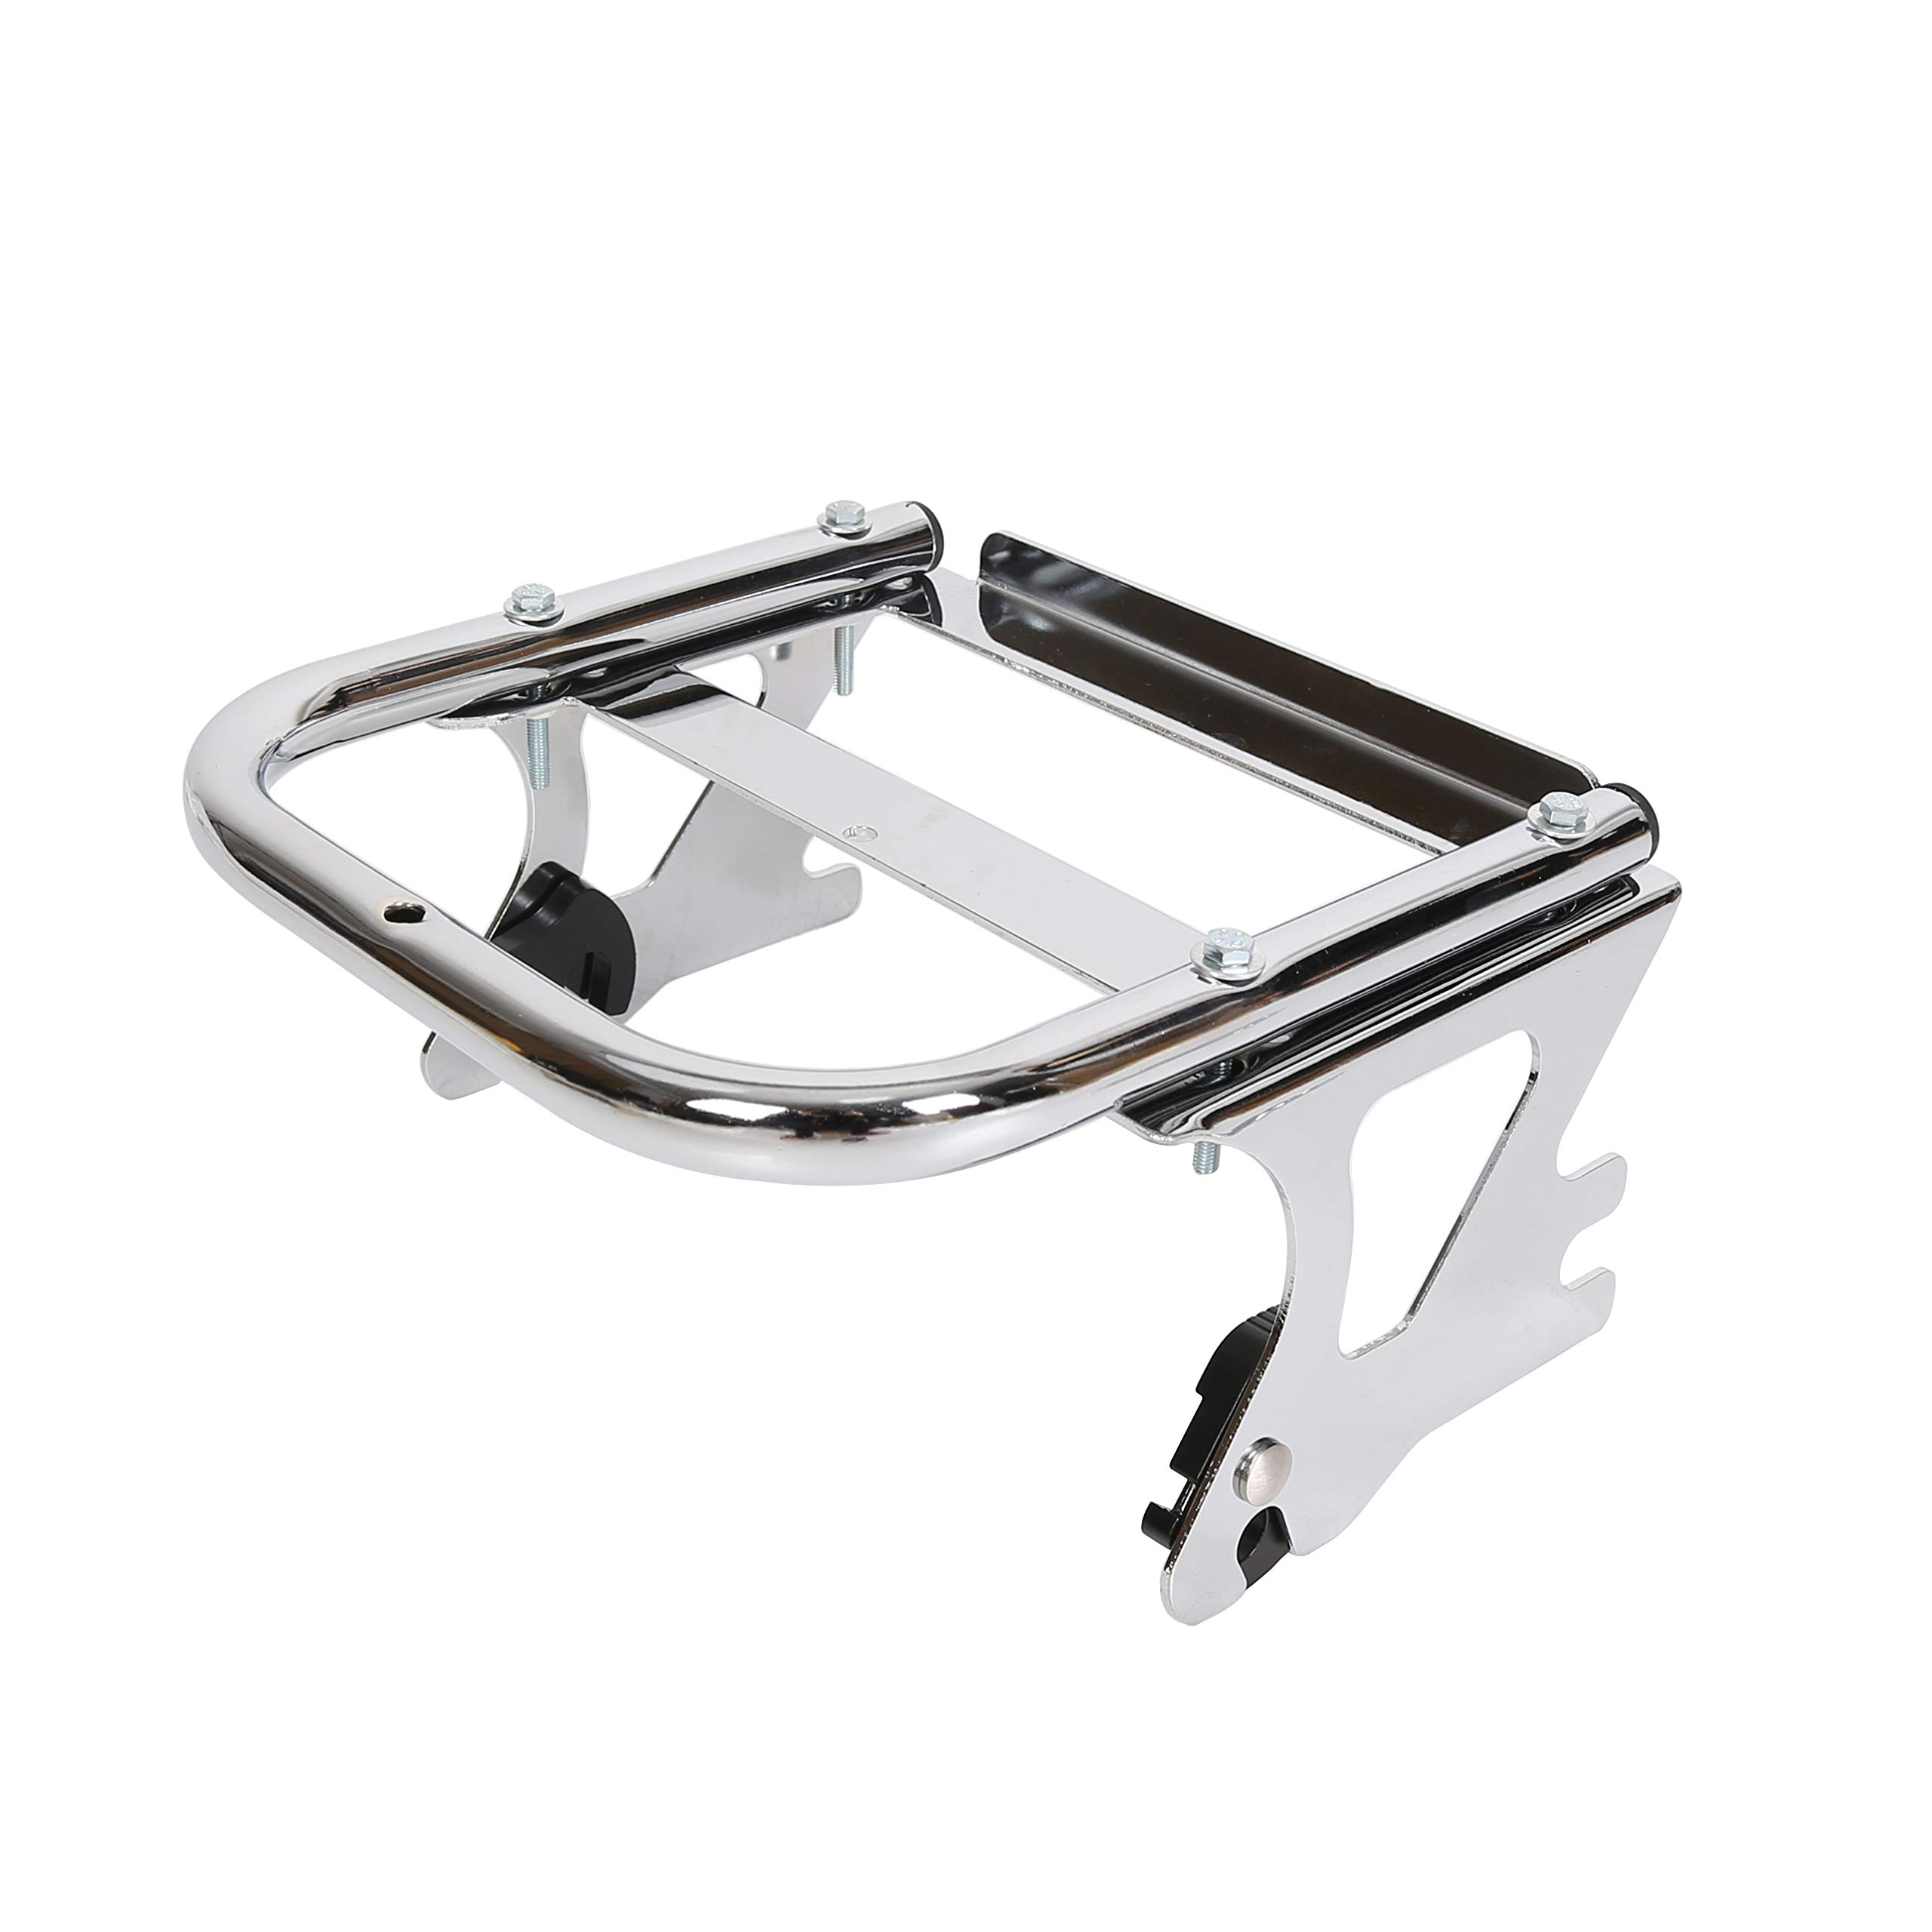 EGO BIKE Detachable Two-up Tour Pak Pack Mounting Luggage Rack for Harley Touring 97-08 by EGO BIKE